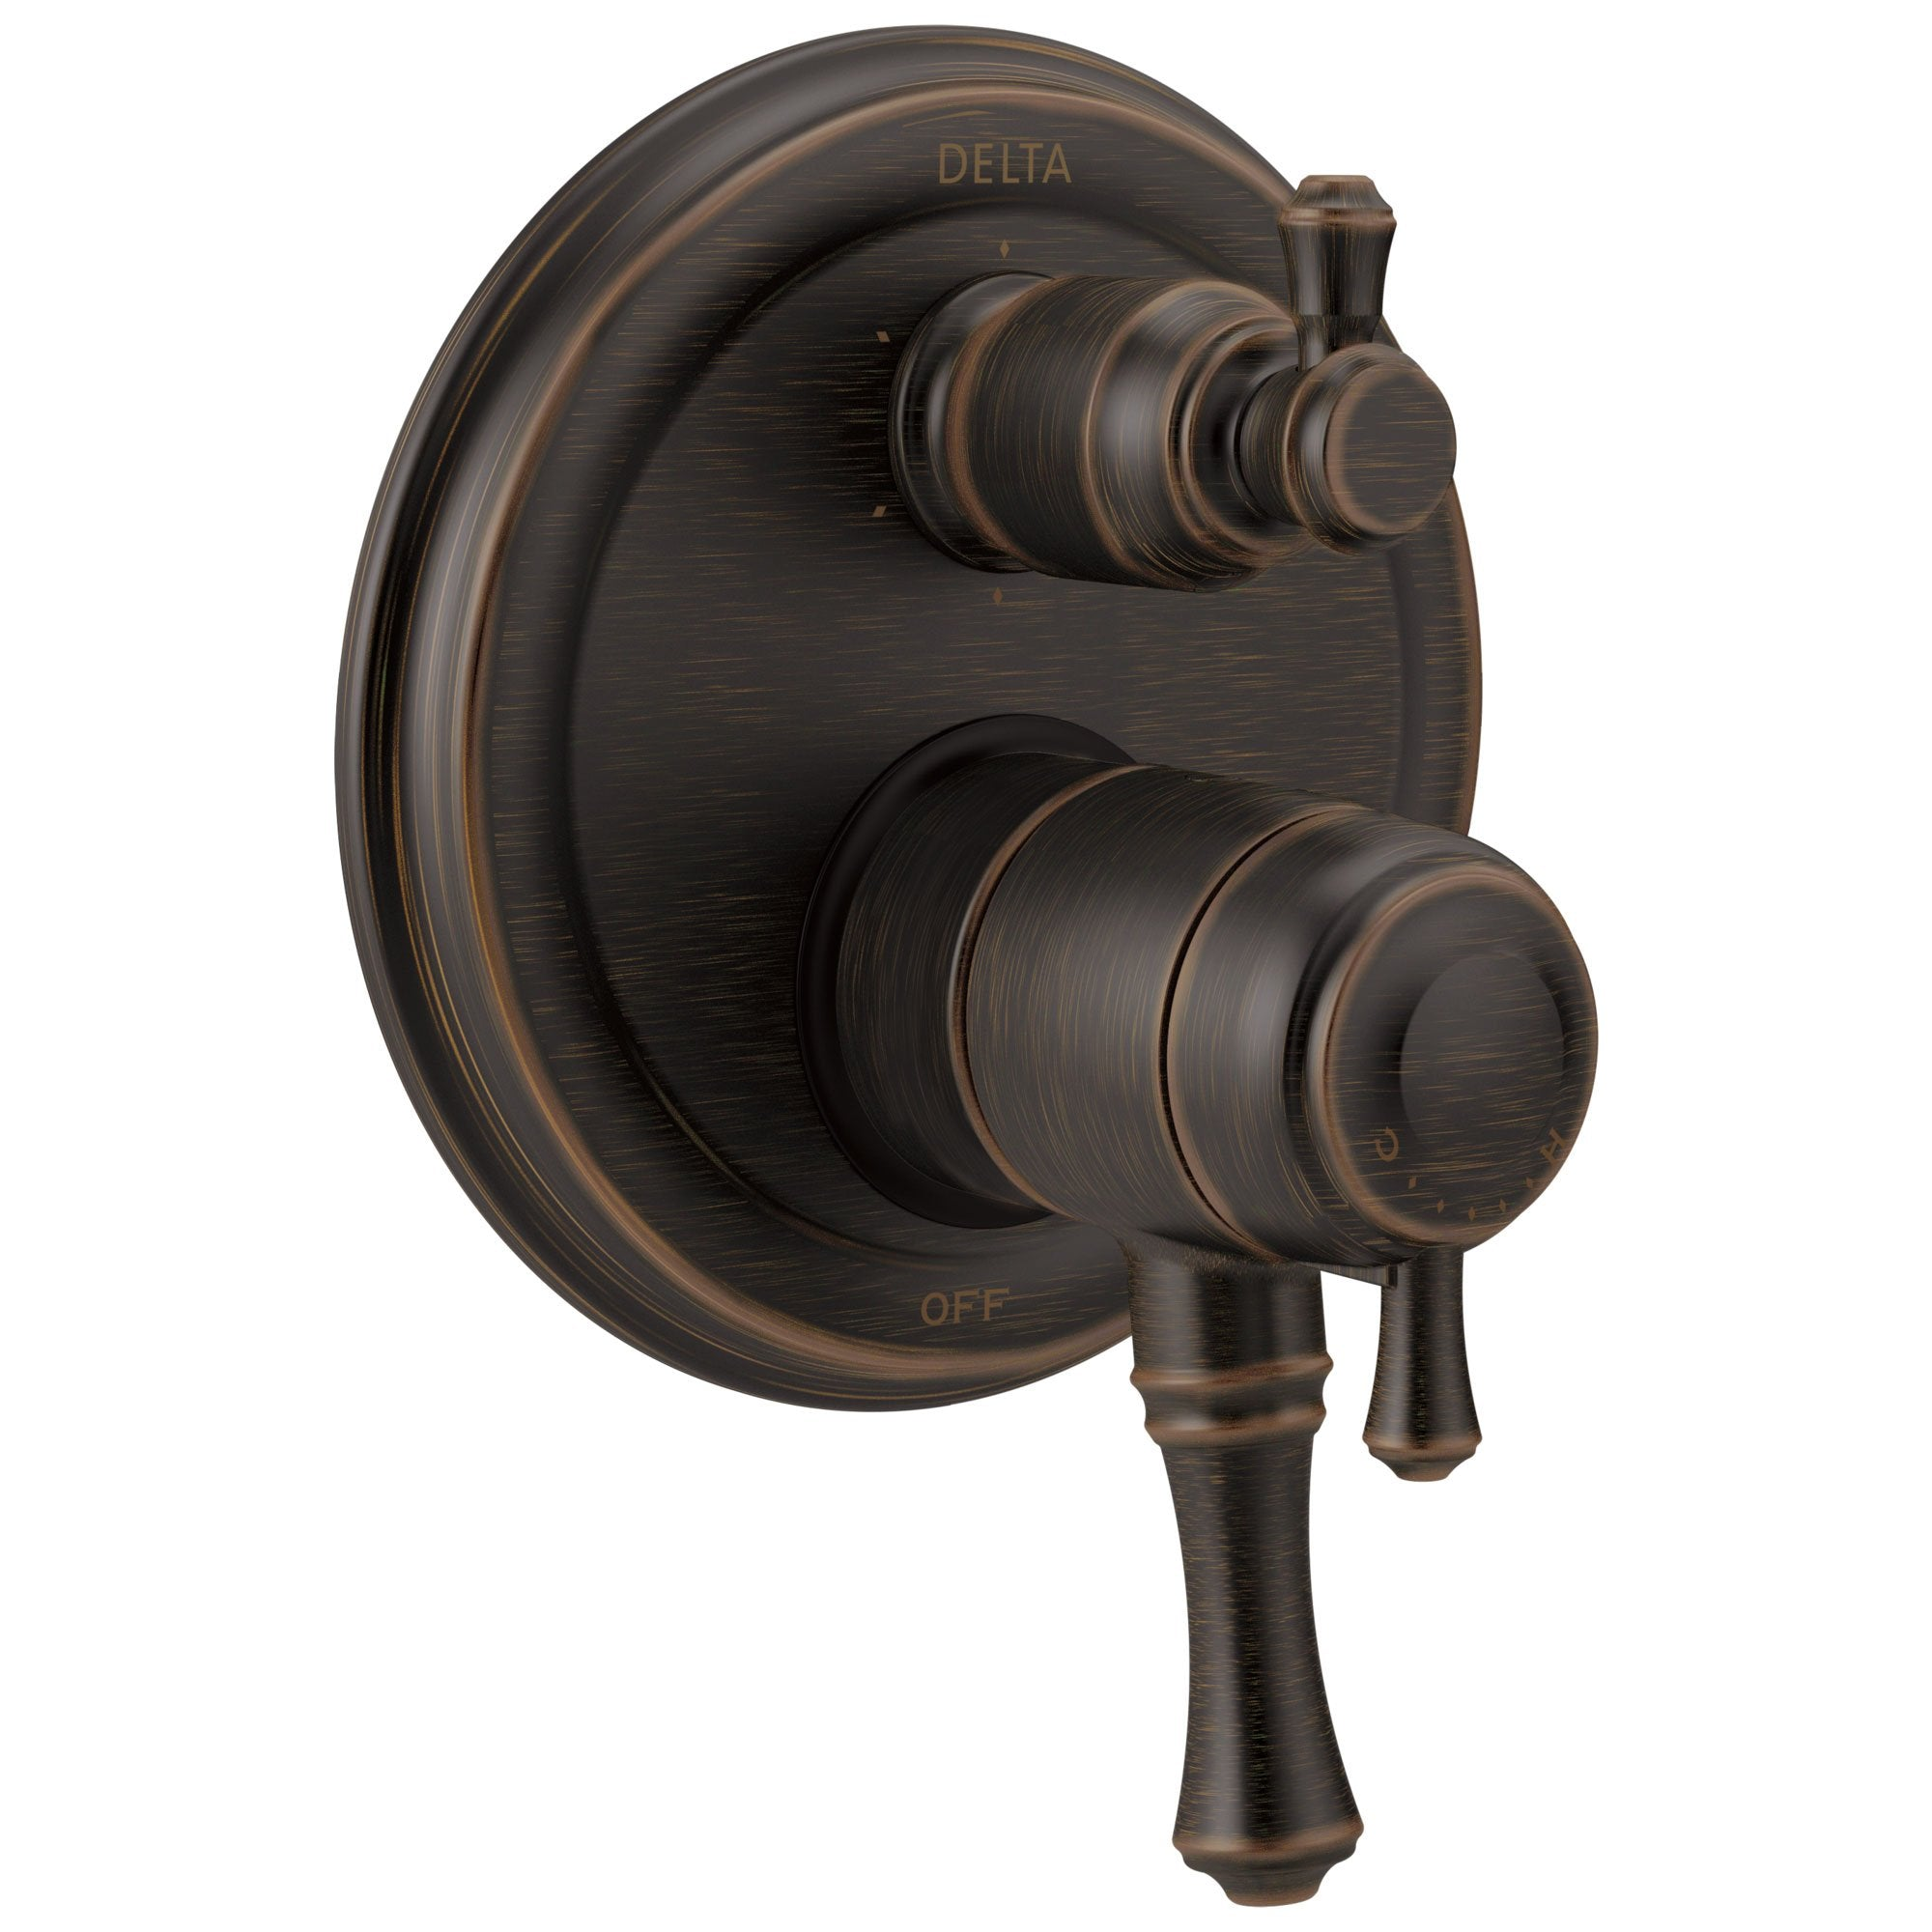 Delta Cassidy Venetian Bronze Traditional Shower Faucet Control Handle with 6-Setting Integrated Diverter Includes Trim Kit and Rough-in Valve with Stops D2145V